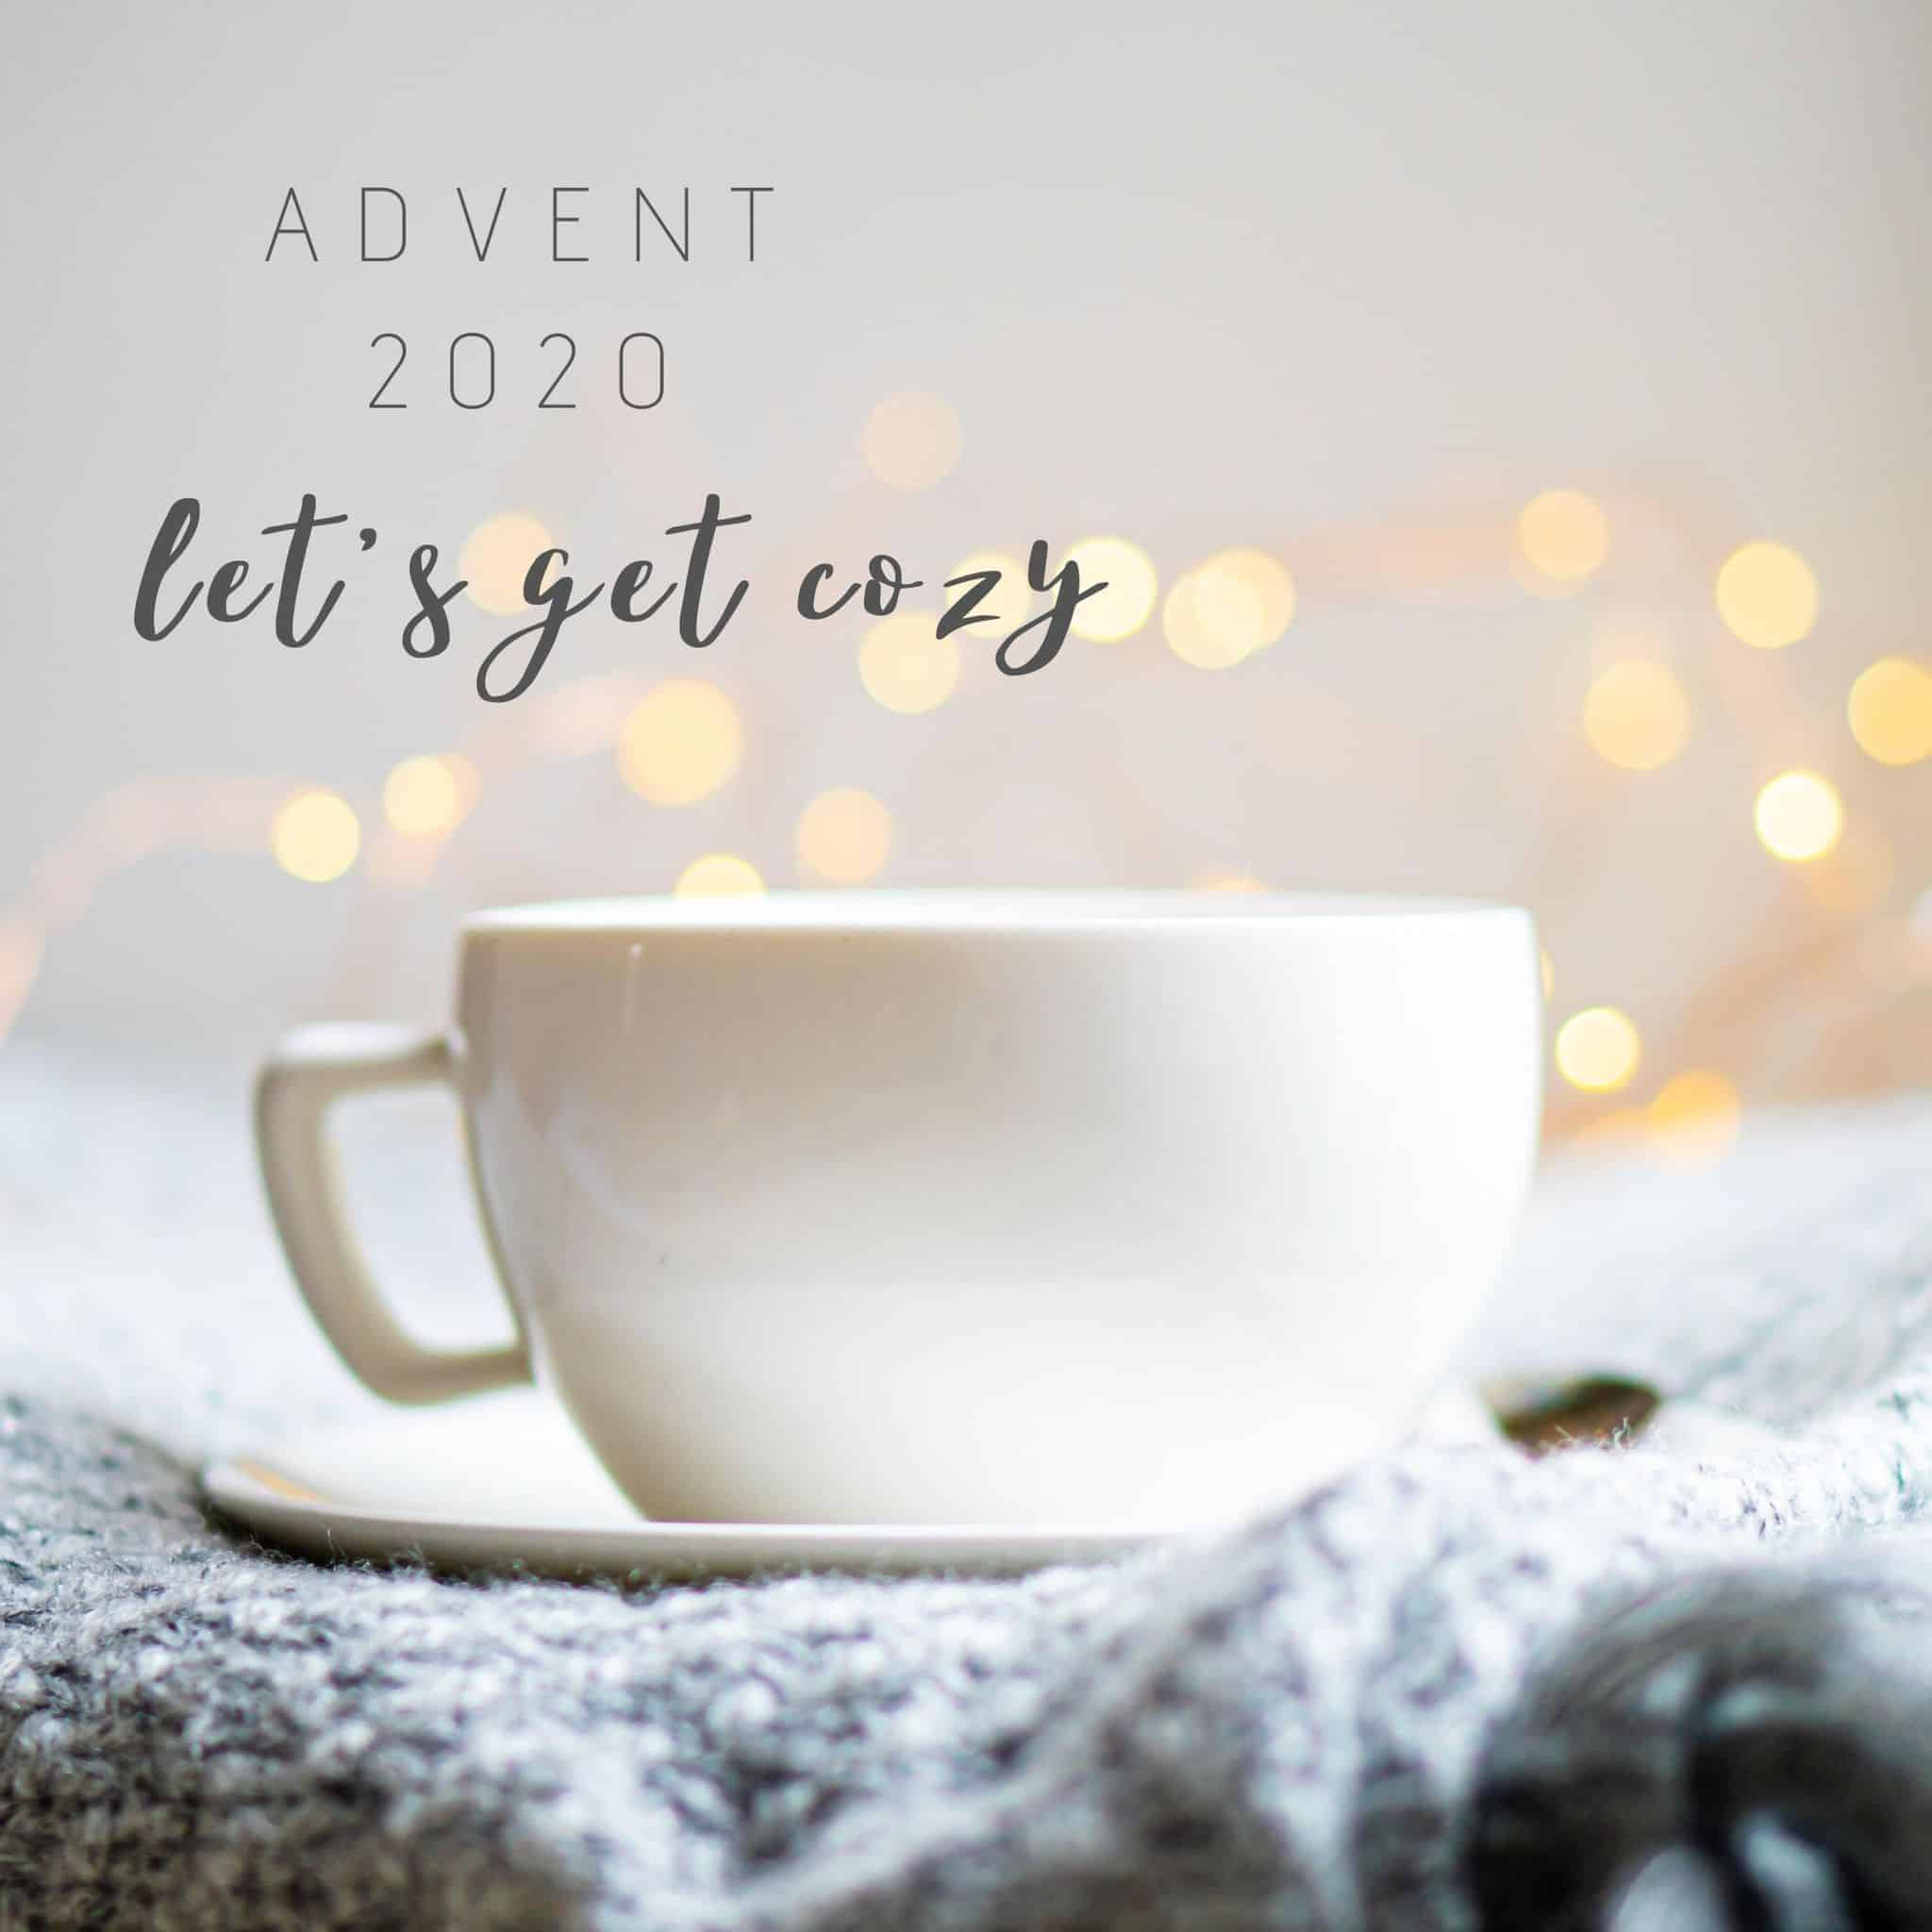 A white teacup sits in front of fairy lights on a handknit with the worlds Advent 2020 let's get cozy.